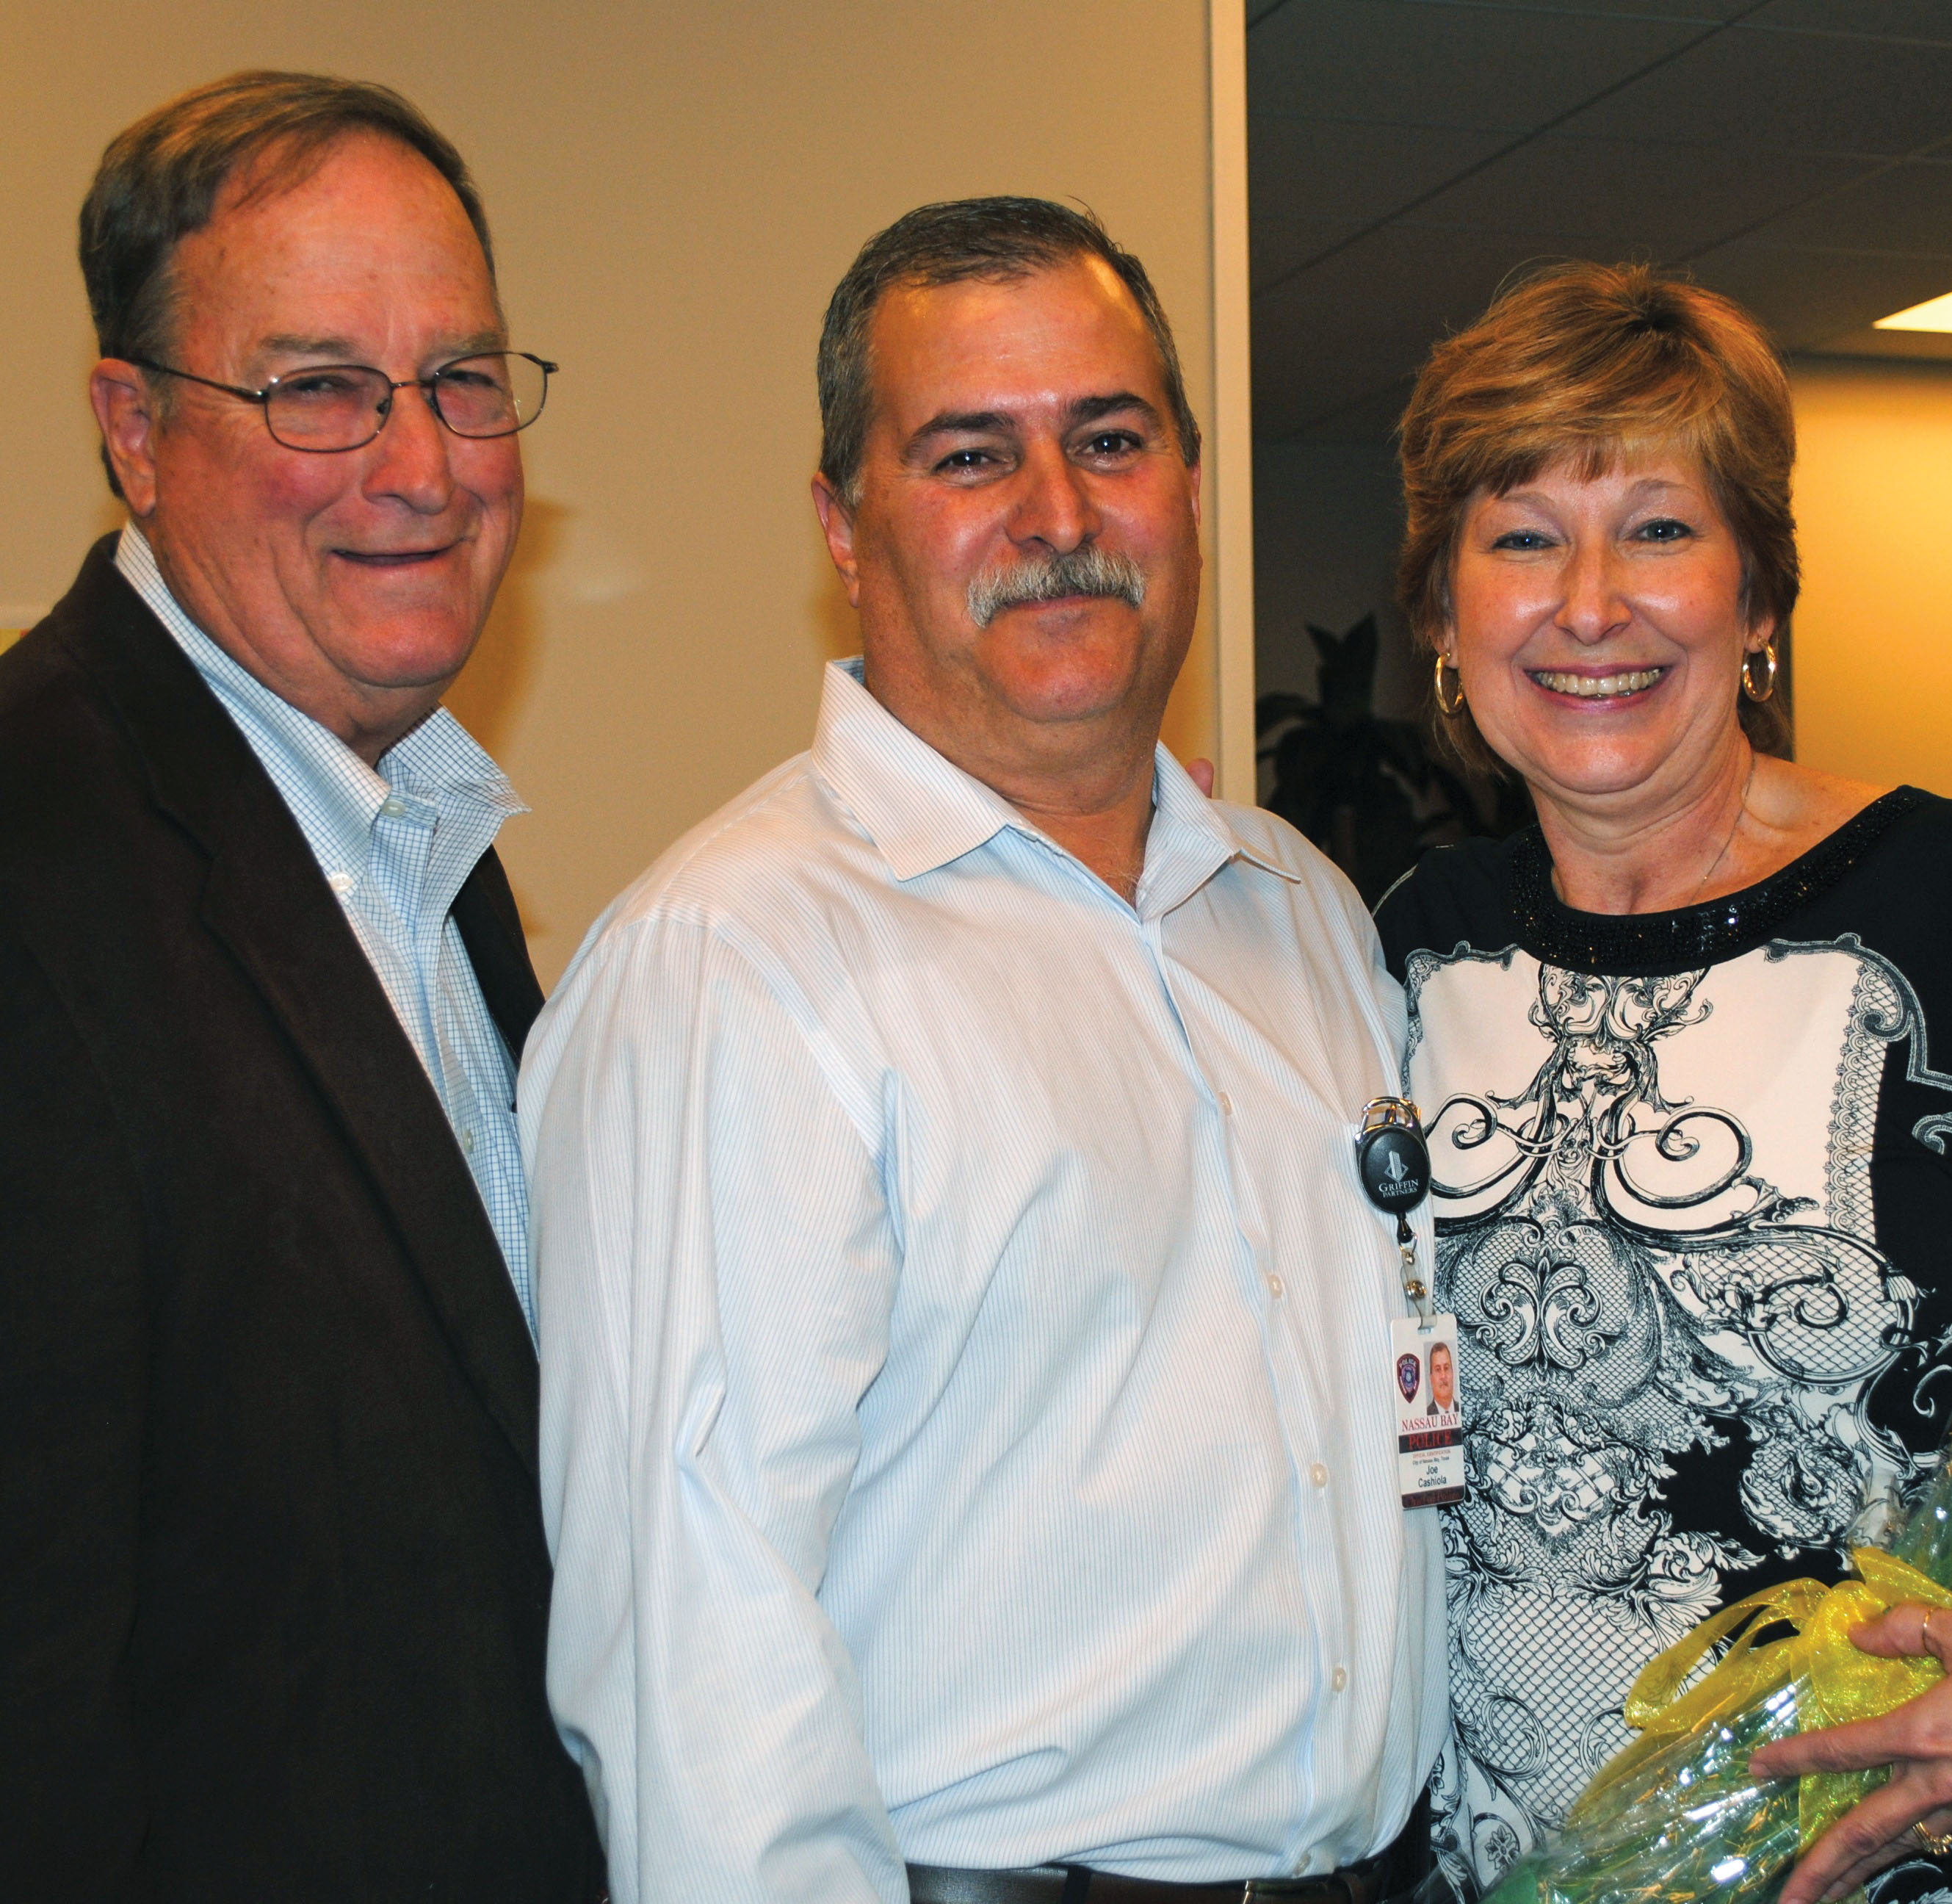 Retiring Nassau Bay Police Chief Joe Cashiola was honored at a farewell party at City Hall with hundreds of citizens dropping by. Former Mayor Don Matter, left, was among the many stopping by to wish the long-time chief and his wife well.